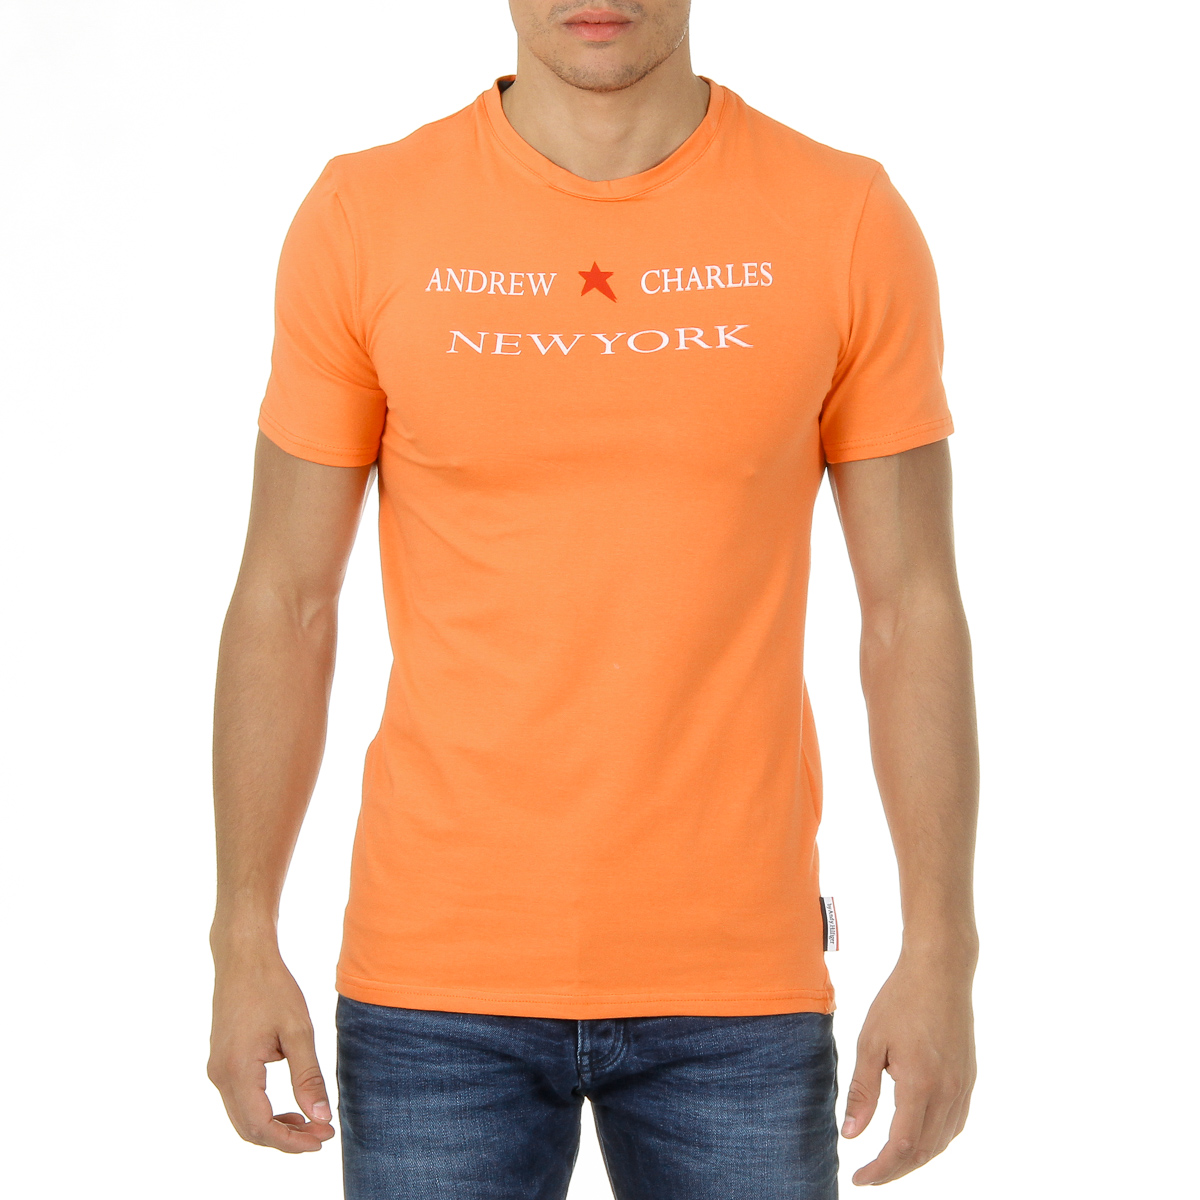 Primary image for Andrew Charles Mens T-Shirt Short Sleeves Round Neck Orange KEITA